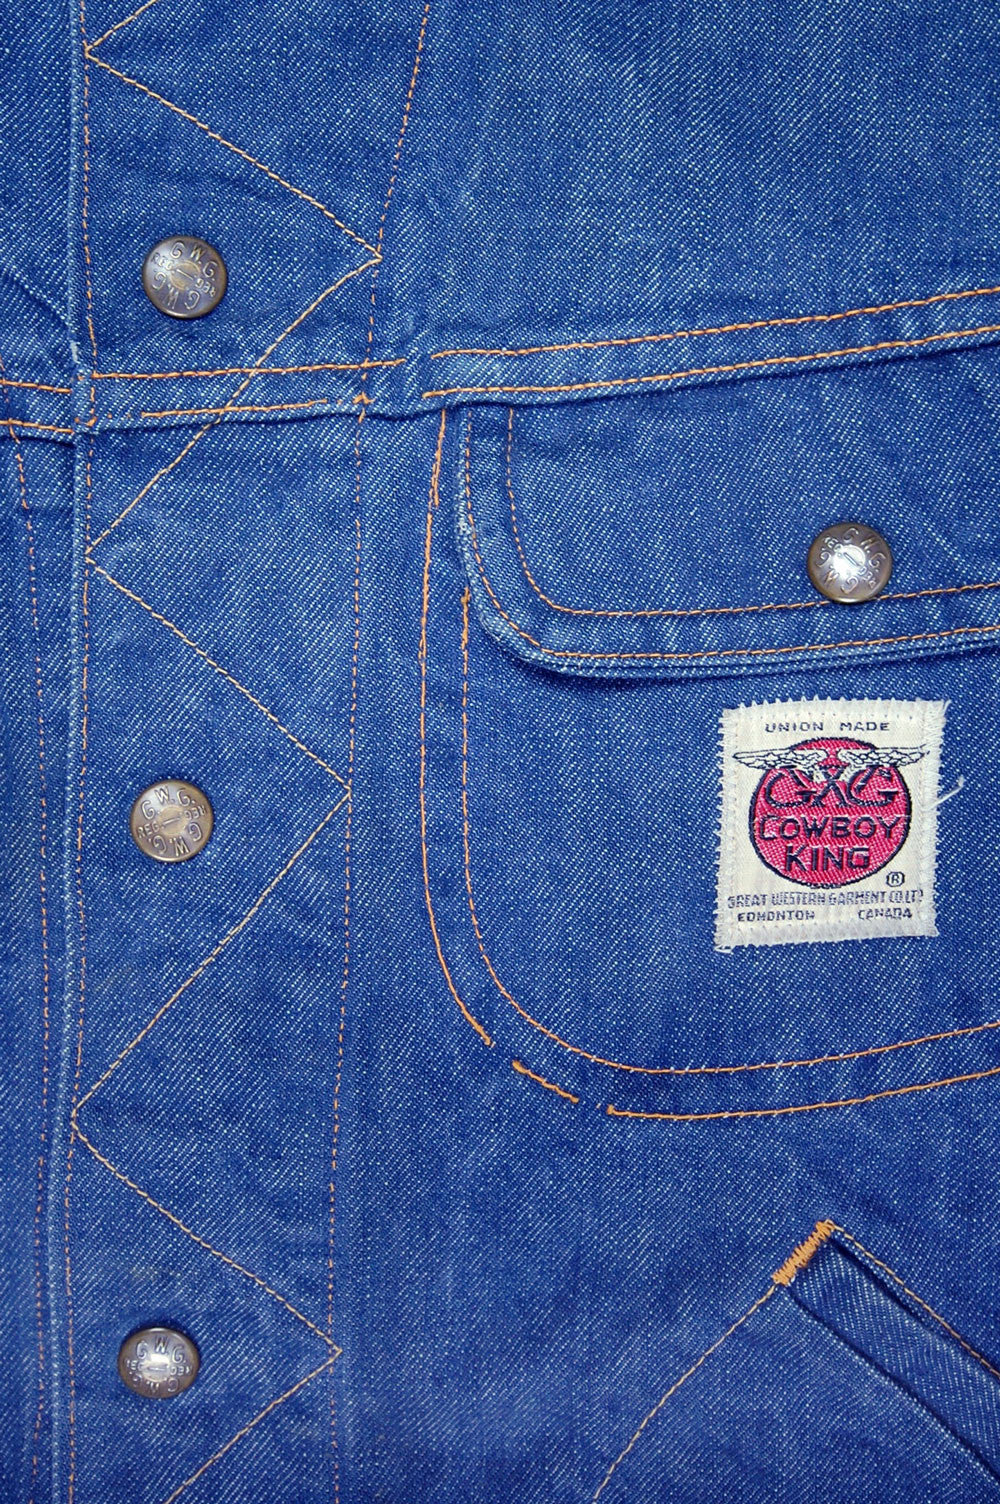 Vintage Cowboy King By Great Western Garment Company 4-Pocket Chain-Stitched GWG Logo Sanforized Denim Jacket